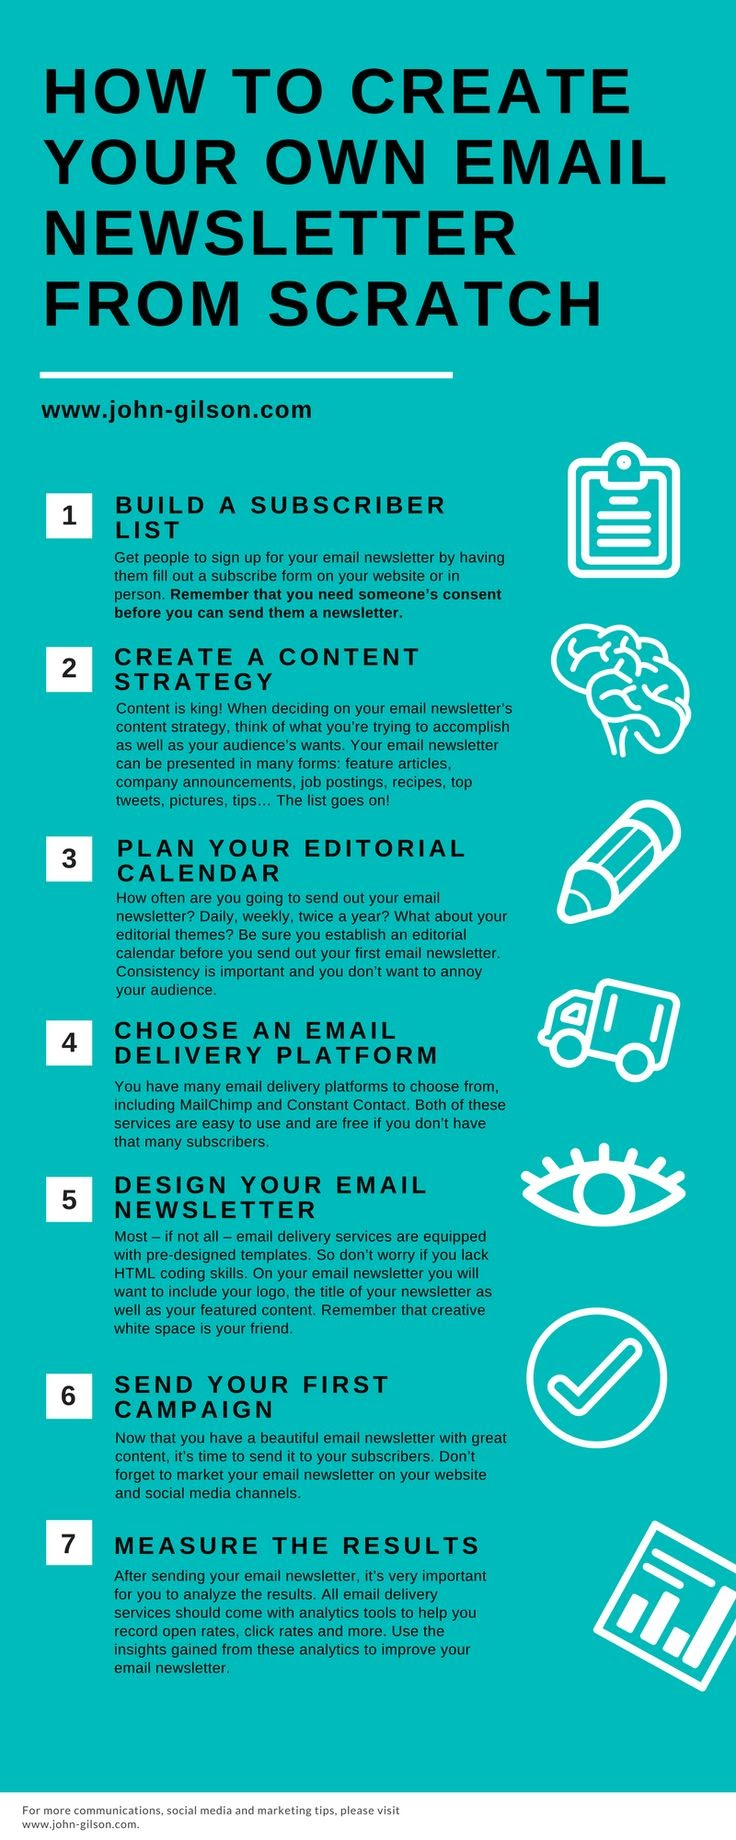 How to Create Your Own Email Newsletter from Scratch